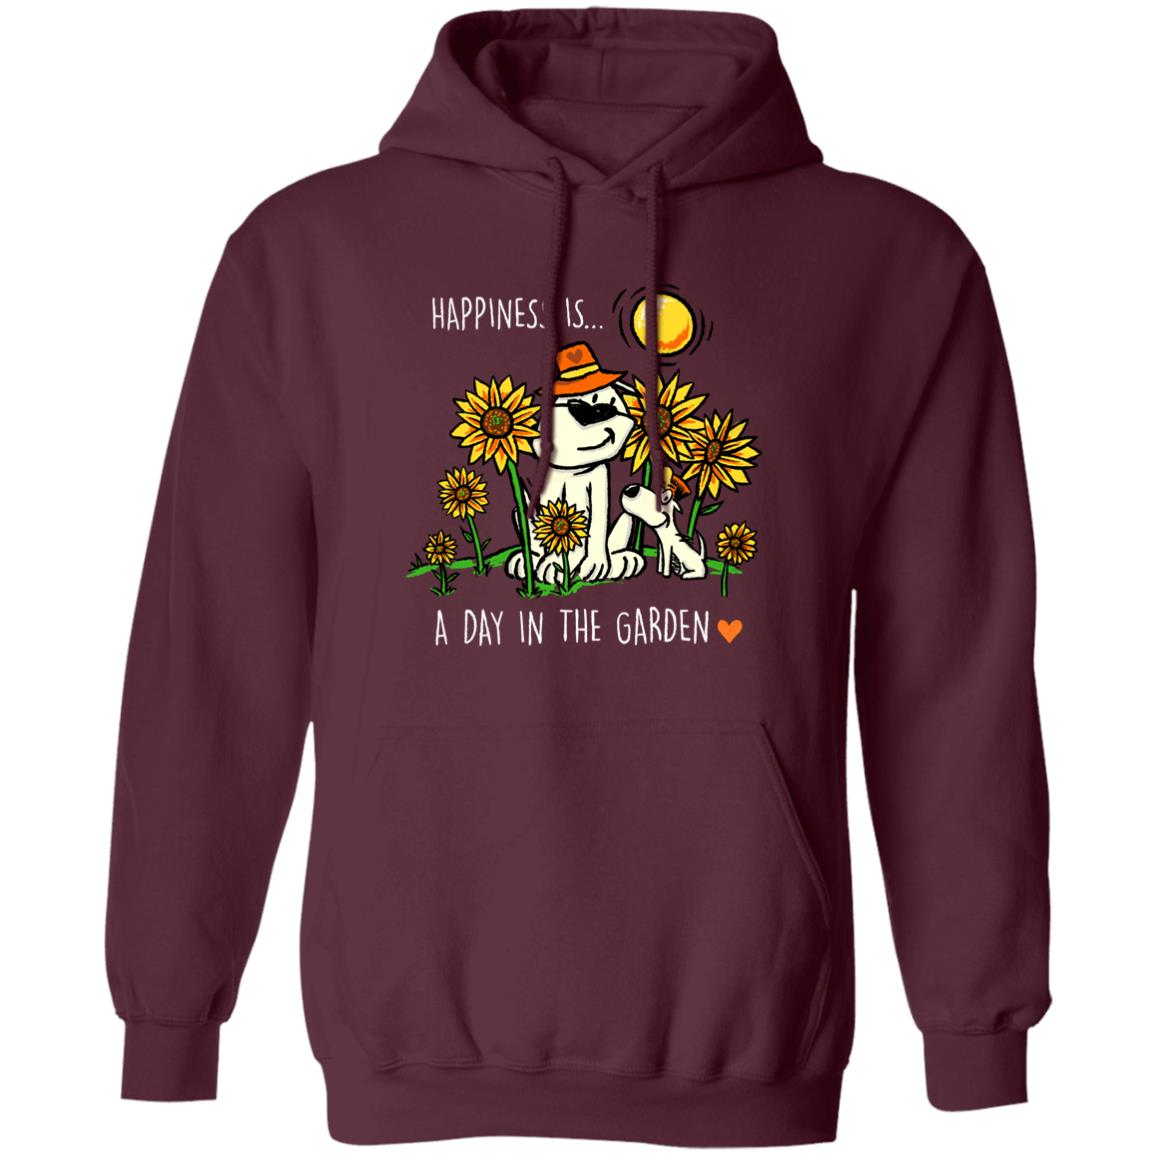 Happiness Is A Day In The Garden Maroon Pullover Hoodie 🐾 Deal Up To 25% Off!